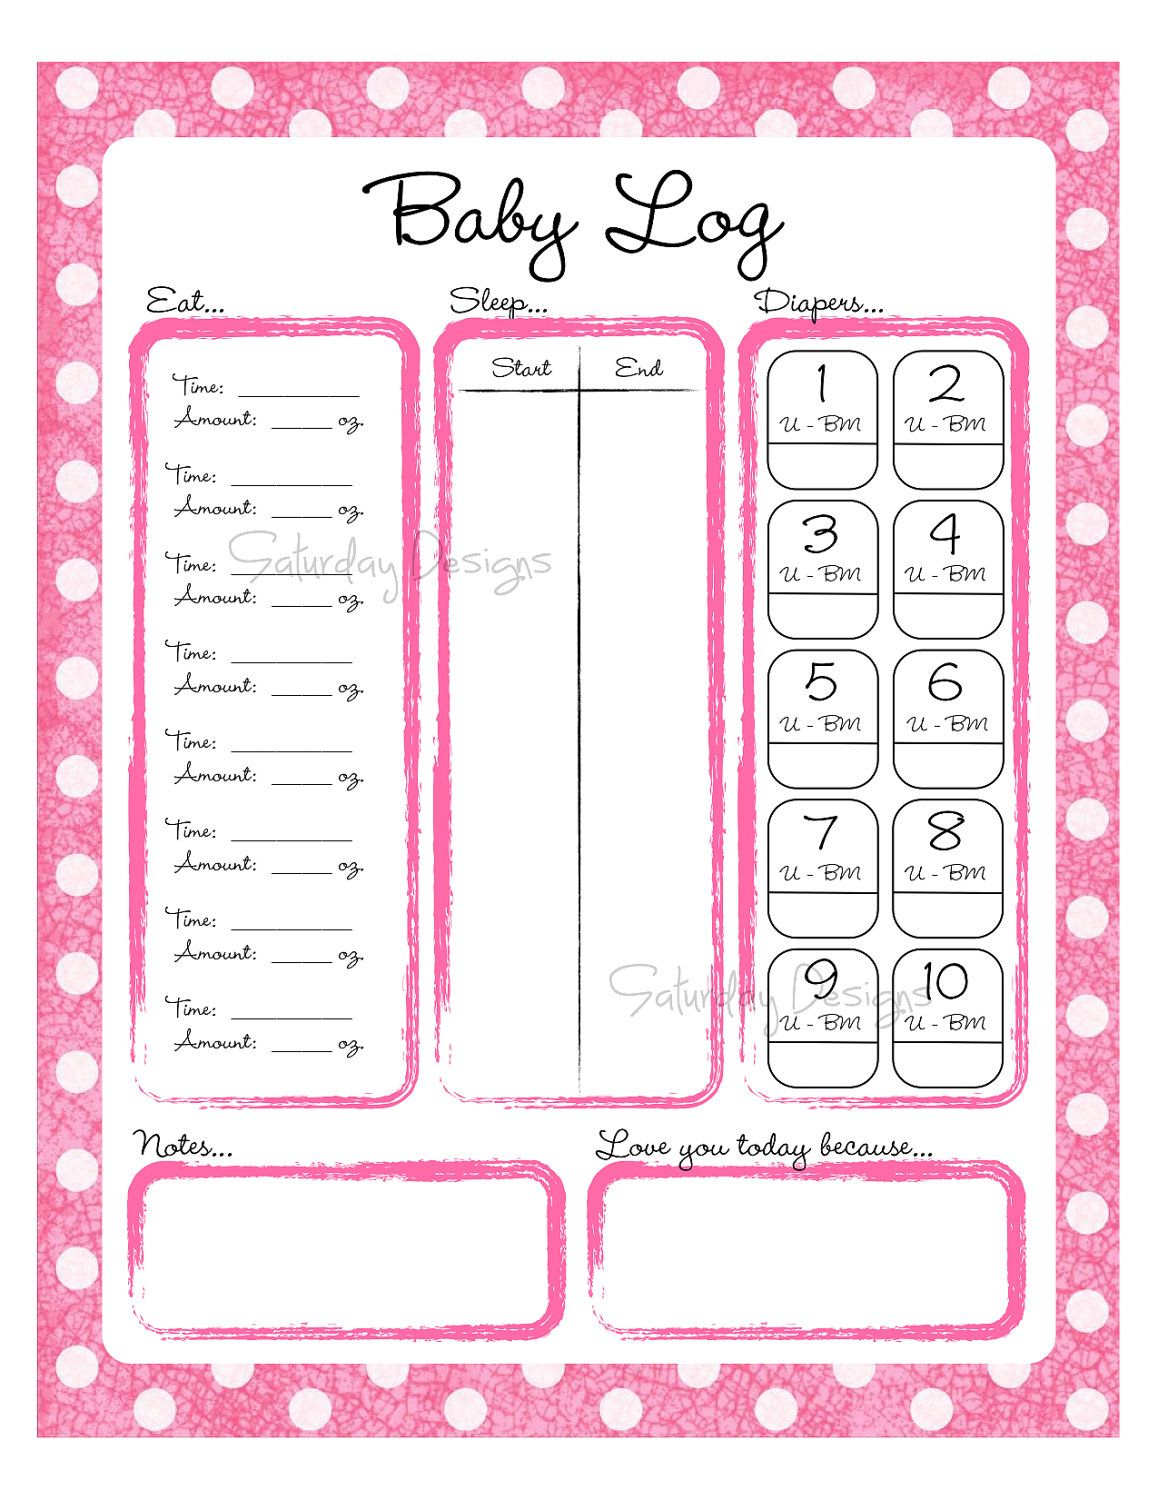 Printable daily log for baby feeding diaper nap chart 350 printable daily log for baby feeding diaper nap chart 350 via pronofoot35fo Choice Image